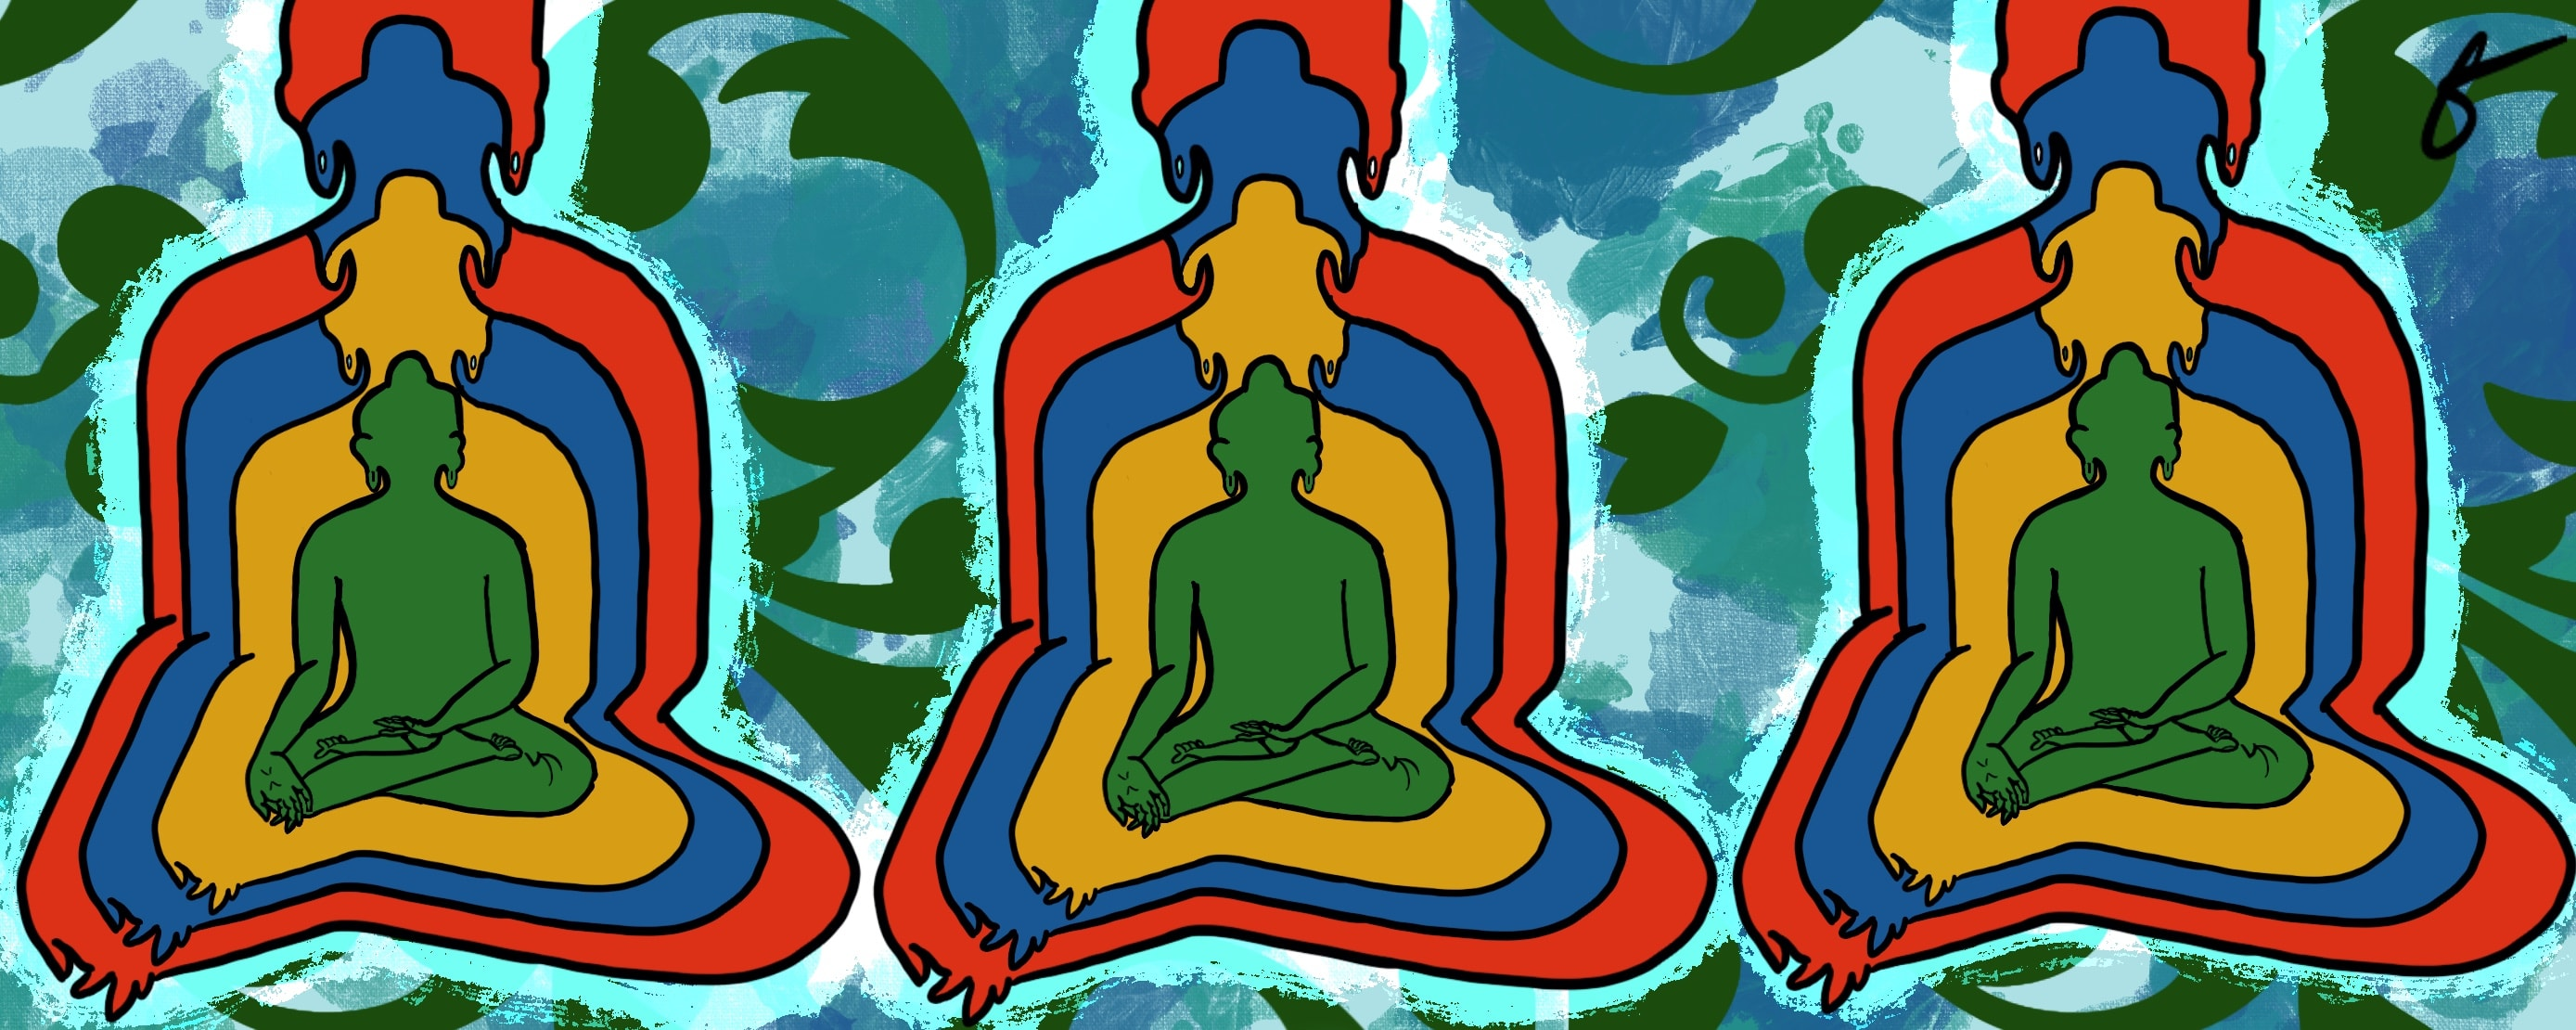 The Dalai Lama's Inner World and the World of Buddhist Mantra